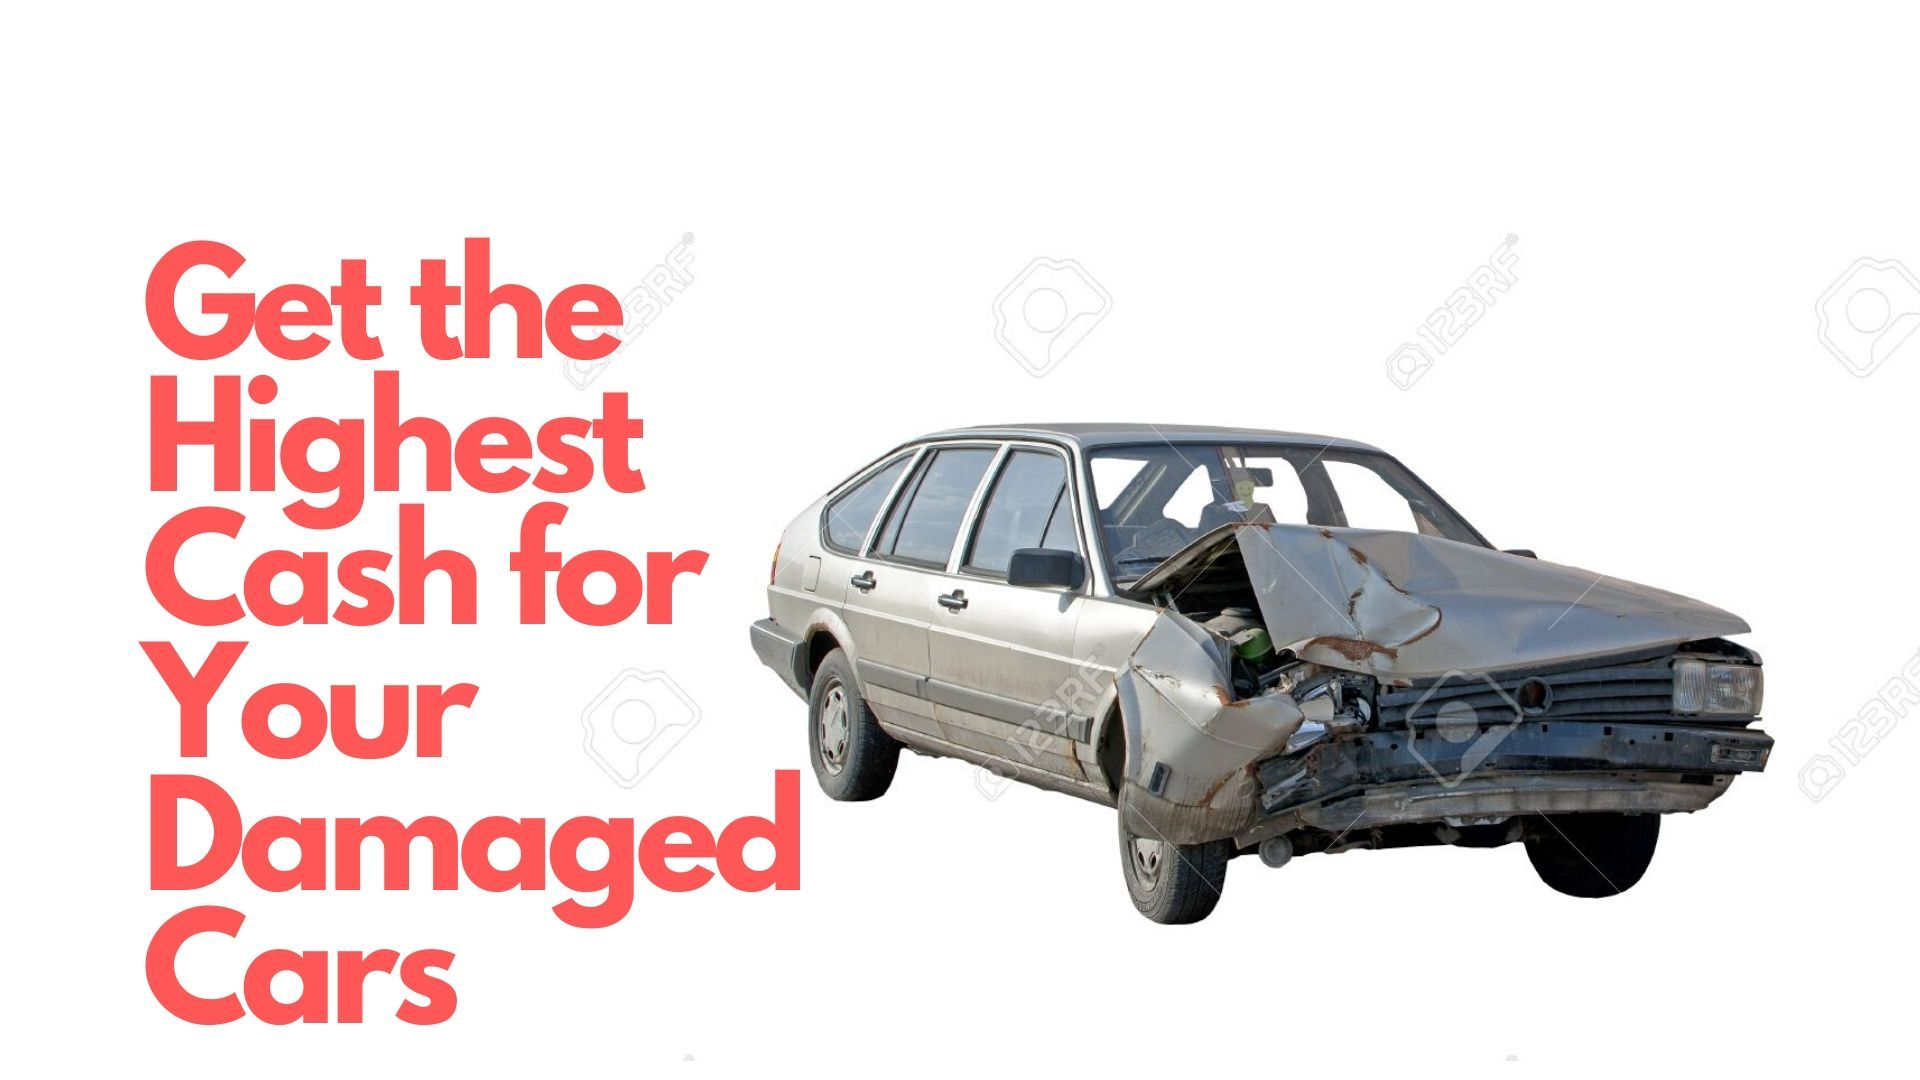 Samir Car Removal offer our customers with cash for